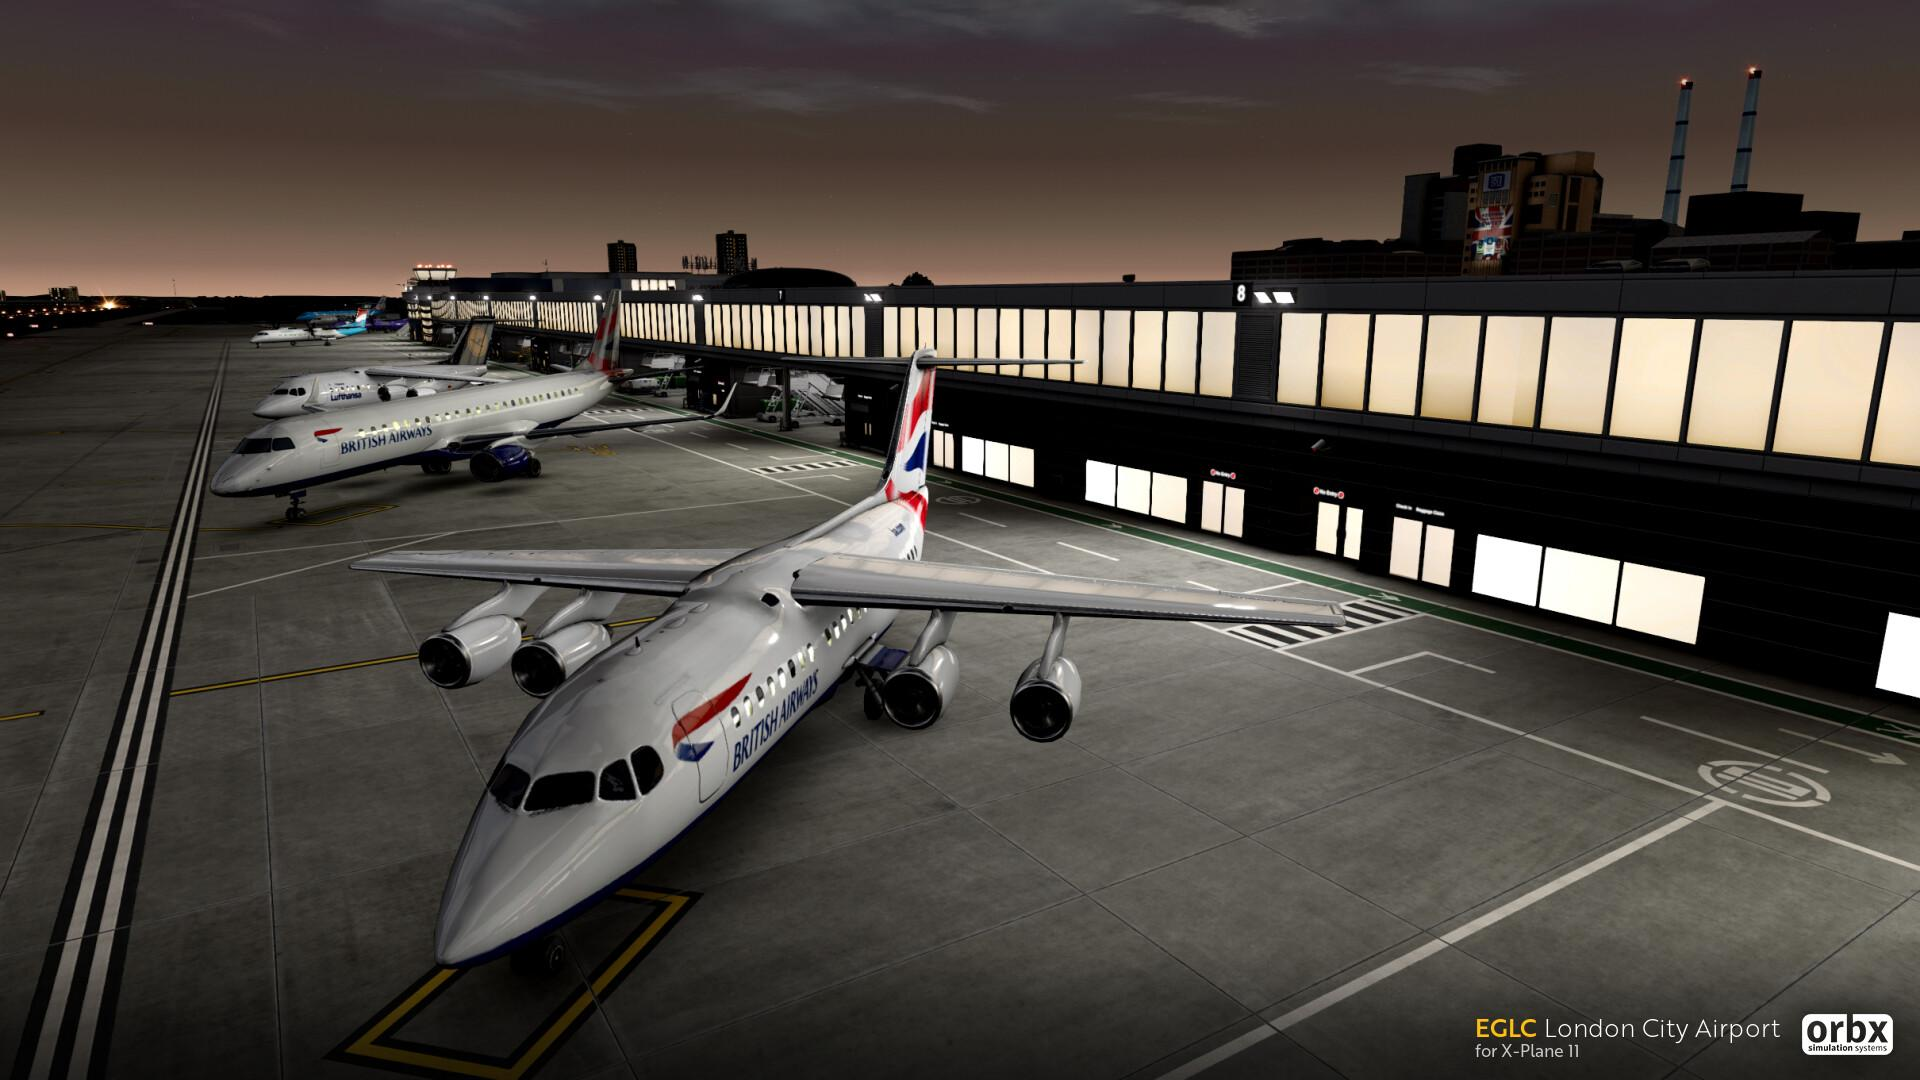 Orbx Releases London City Airport for X-Plane | Threshold